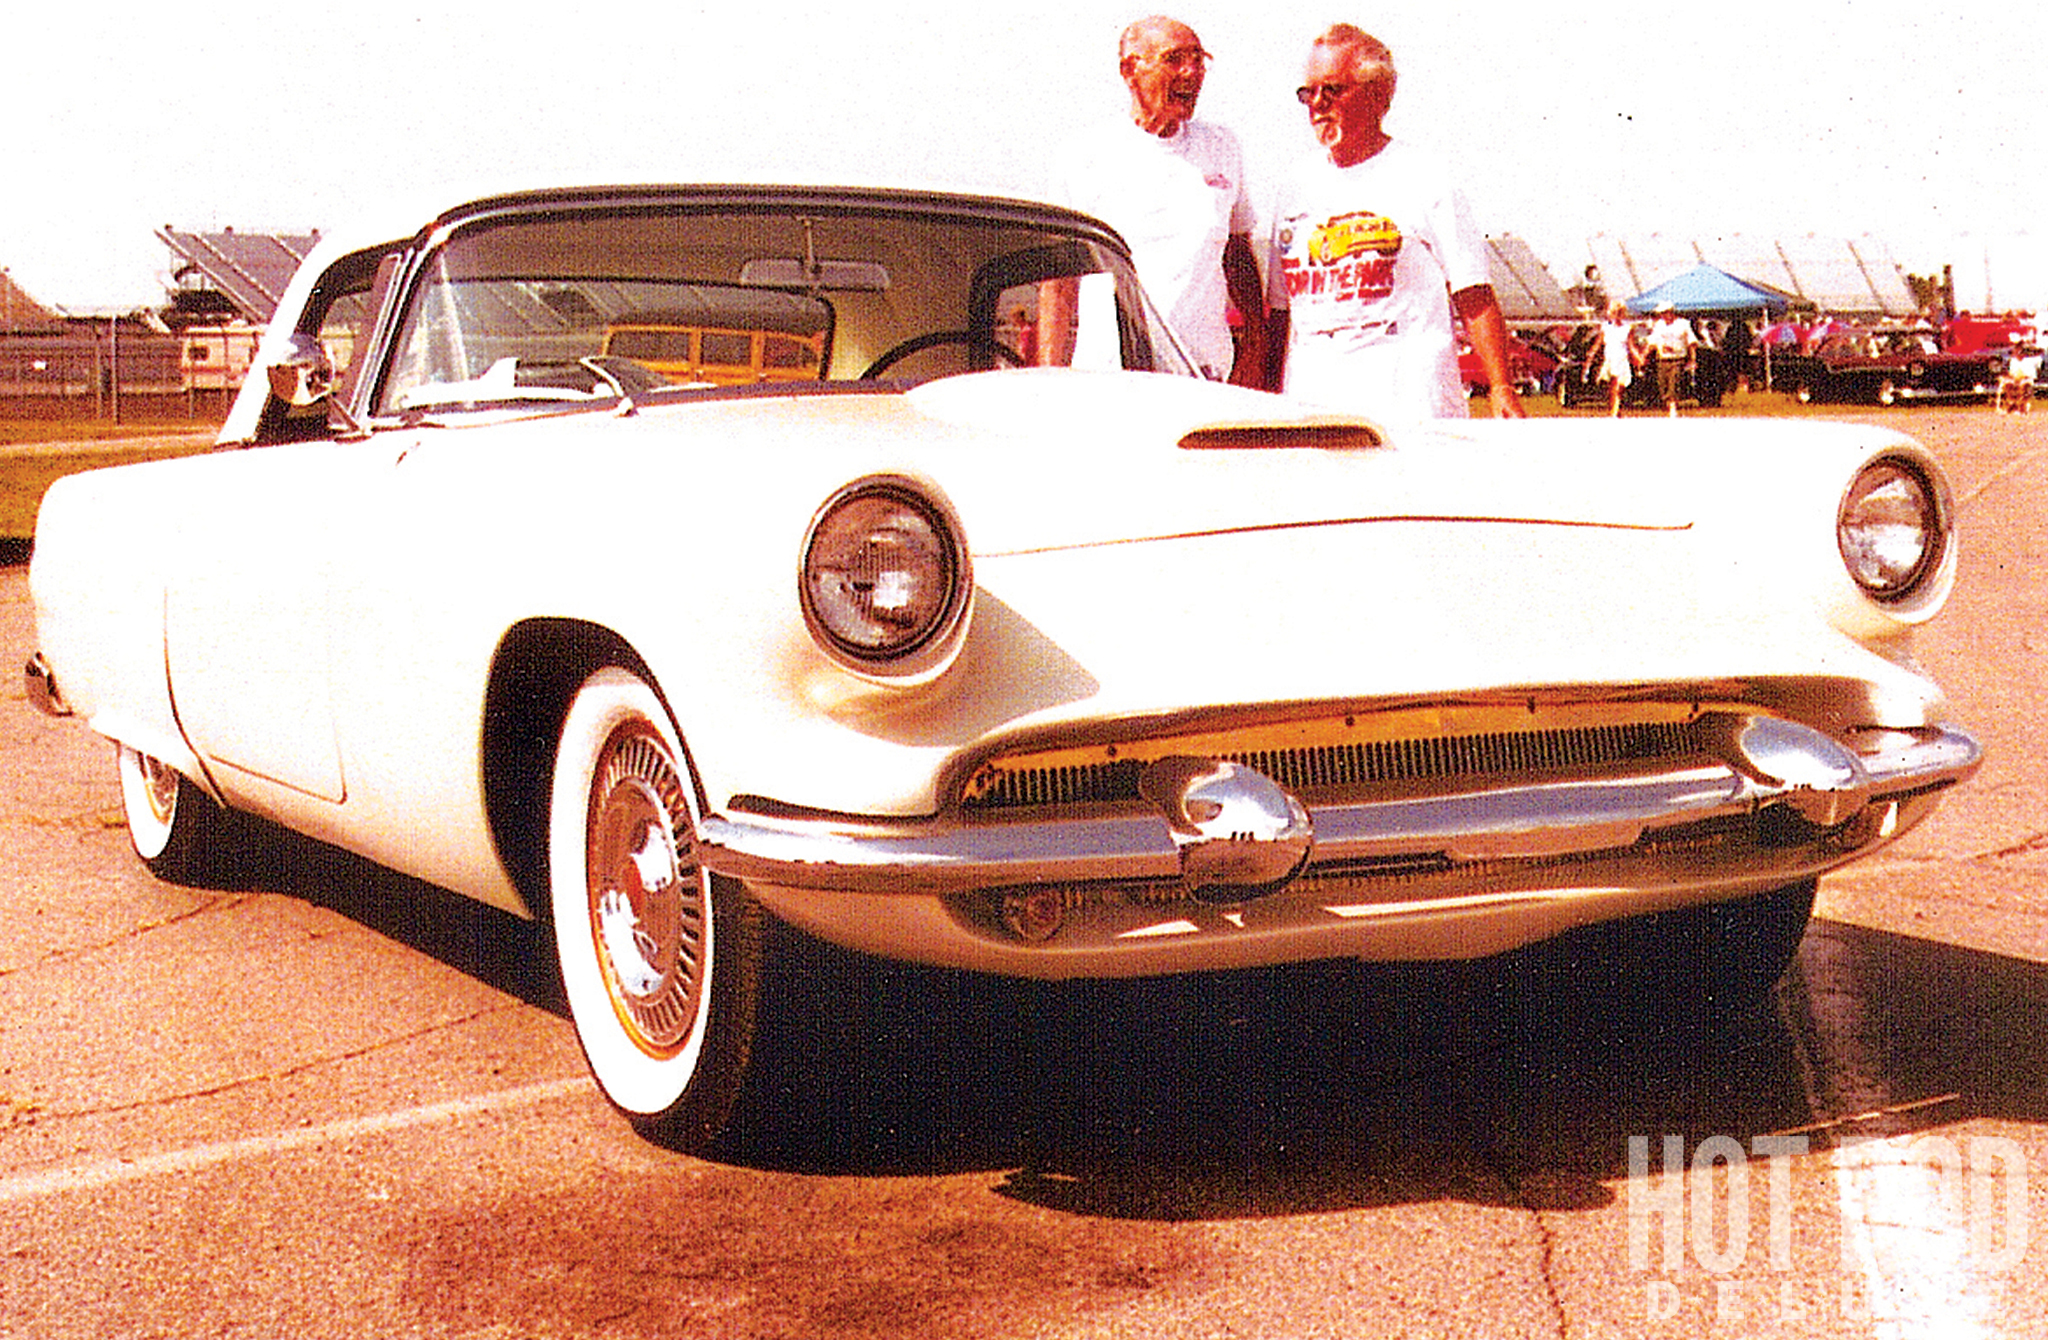 Bob Kaiser (left), one of the two men who did the customizing in eight months during late 1955 and early 1956, never saw the car again until he happened upon Don Morton (right) at this Michigan International Speedway car show, 49 years later. Bob, who died a few months after this 2005 photo, and his late partner, Ron Clark, left behind an enormous legacy of Clarkaiser customs, of which the Golden Bird may by the slickest.